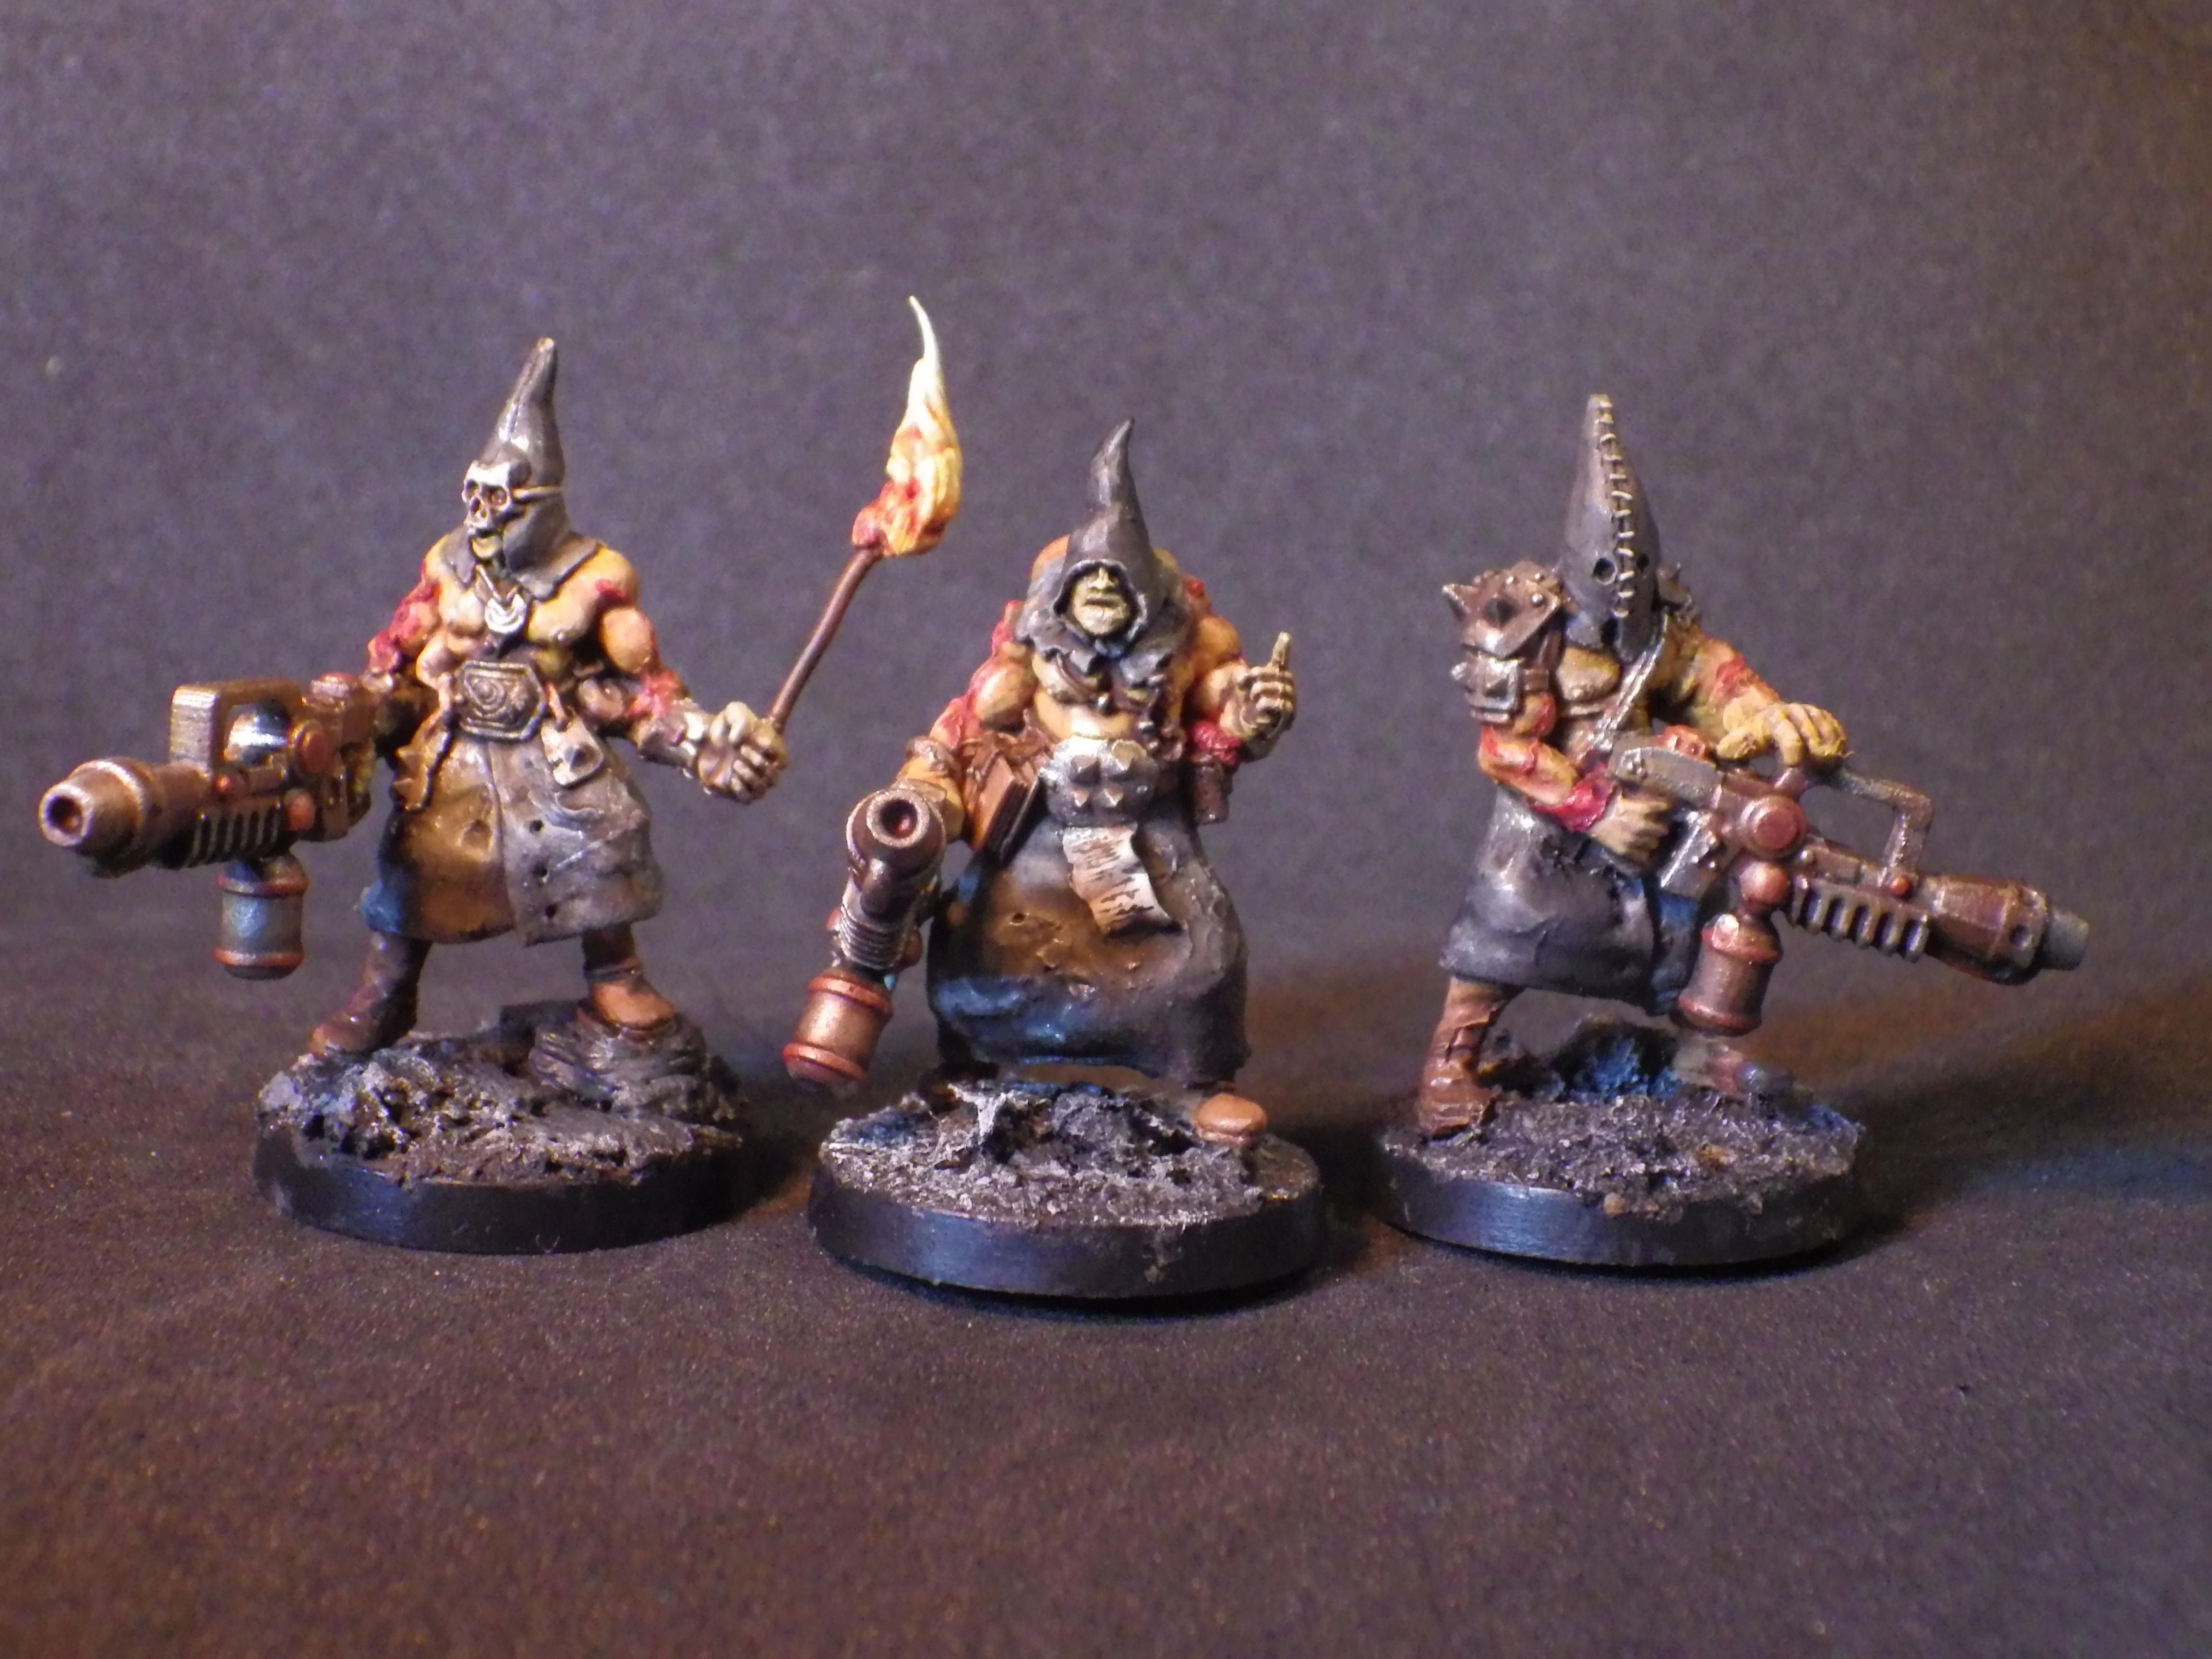 Chaos, Cultist, Flamethrower, Heretic, Mutant